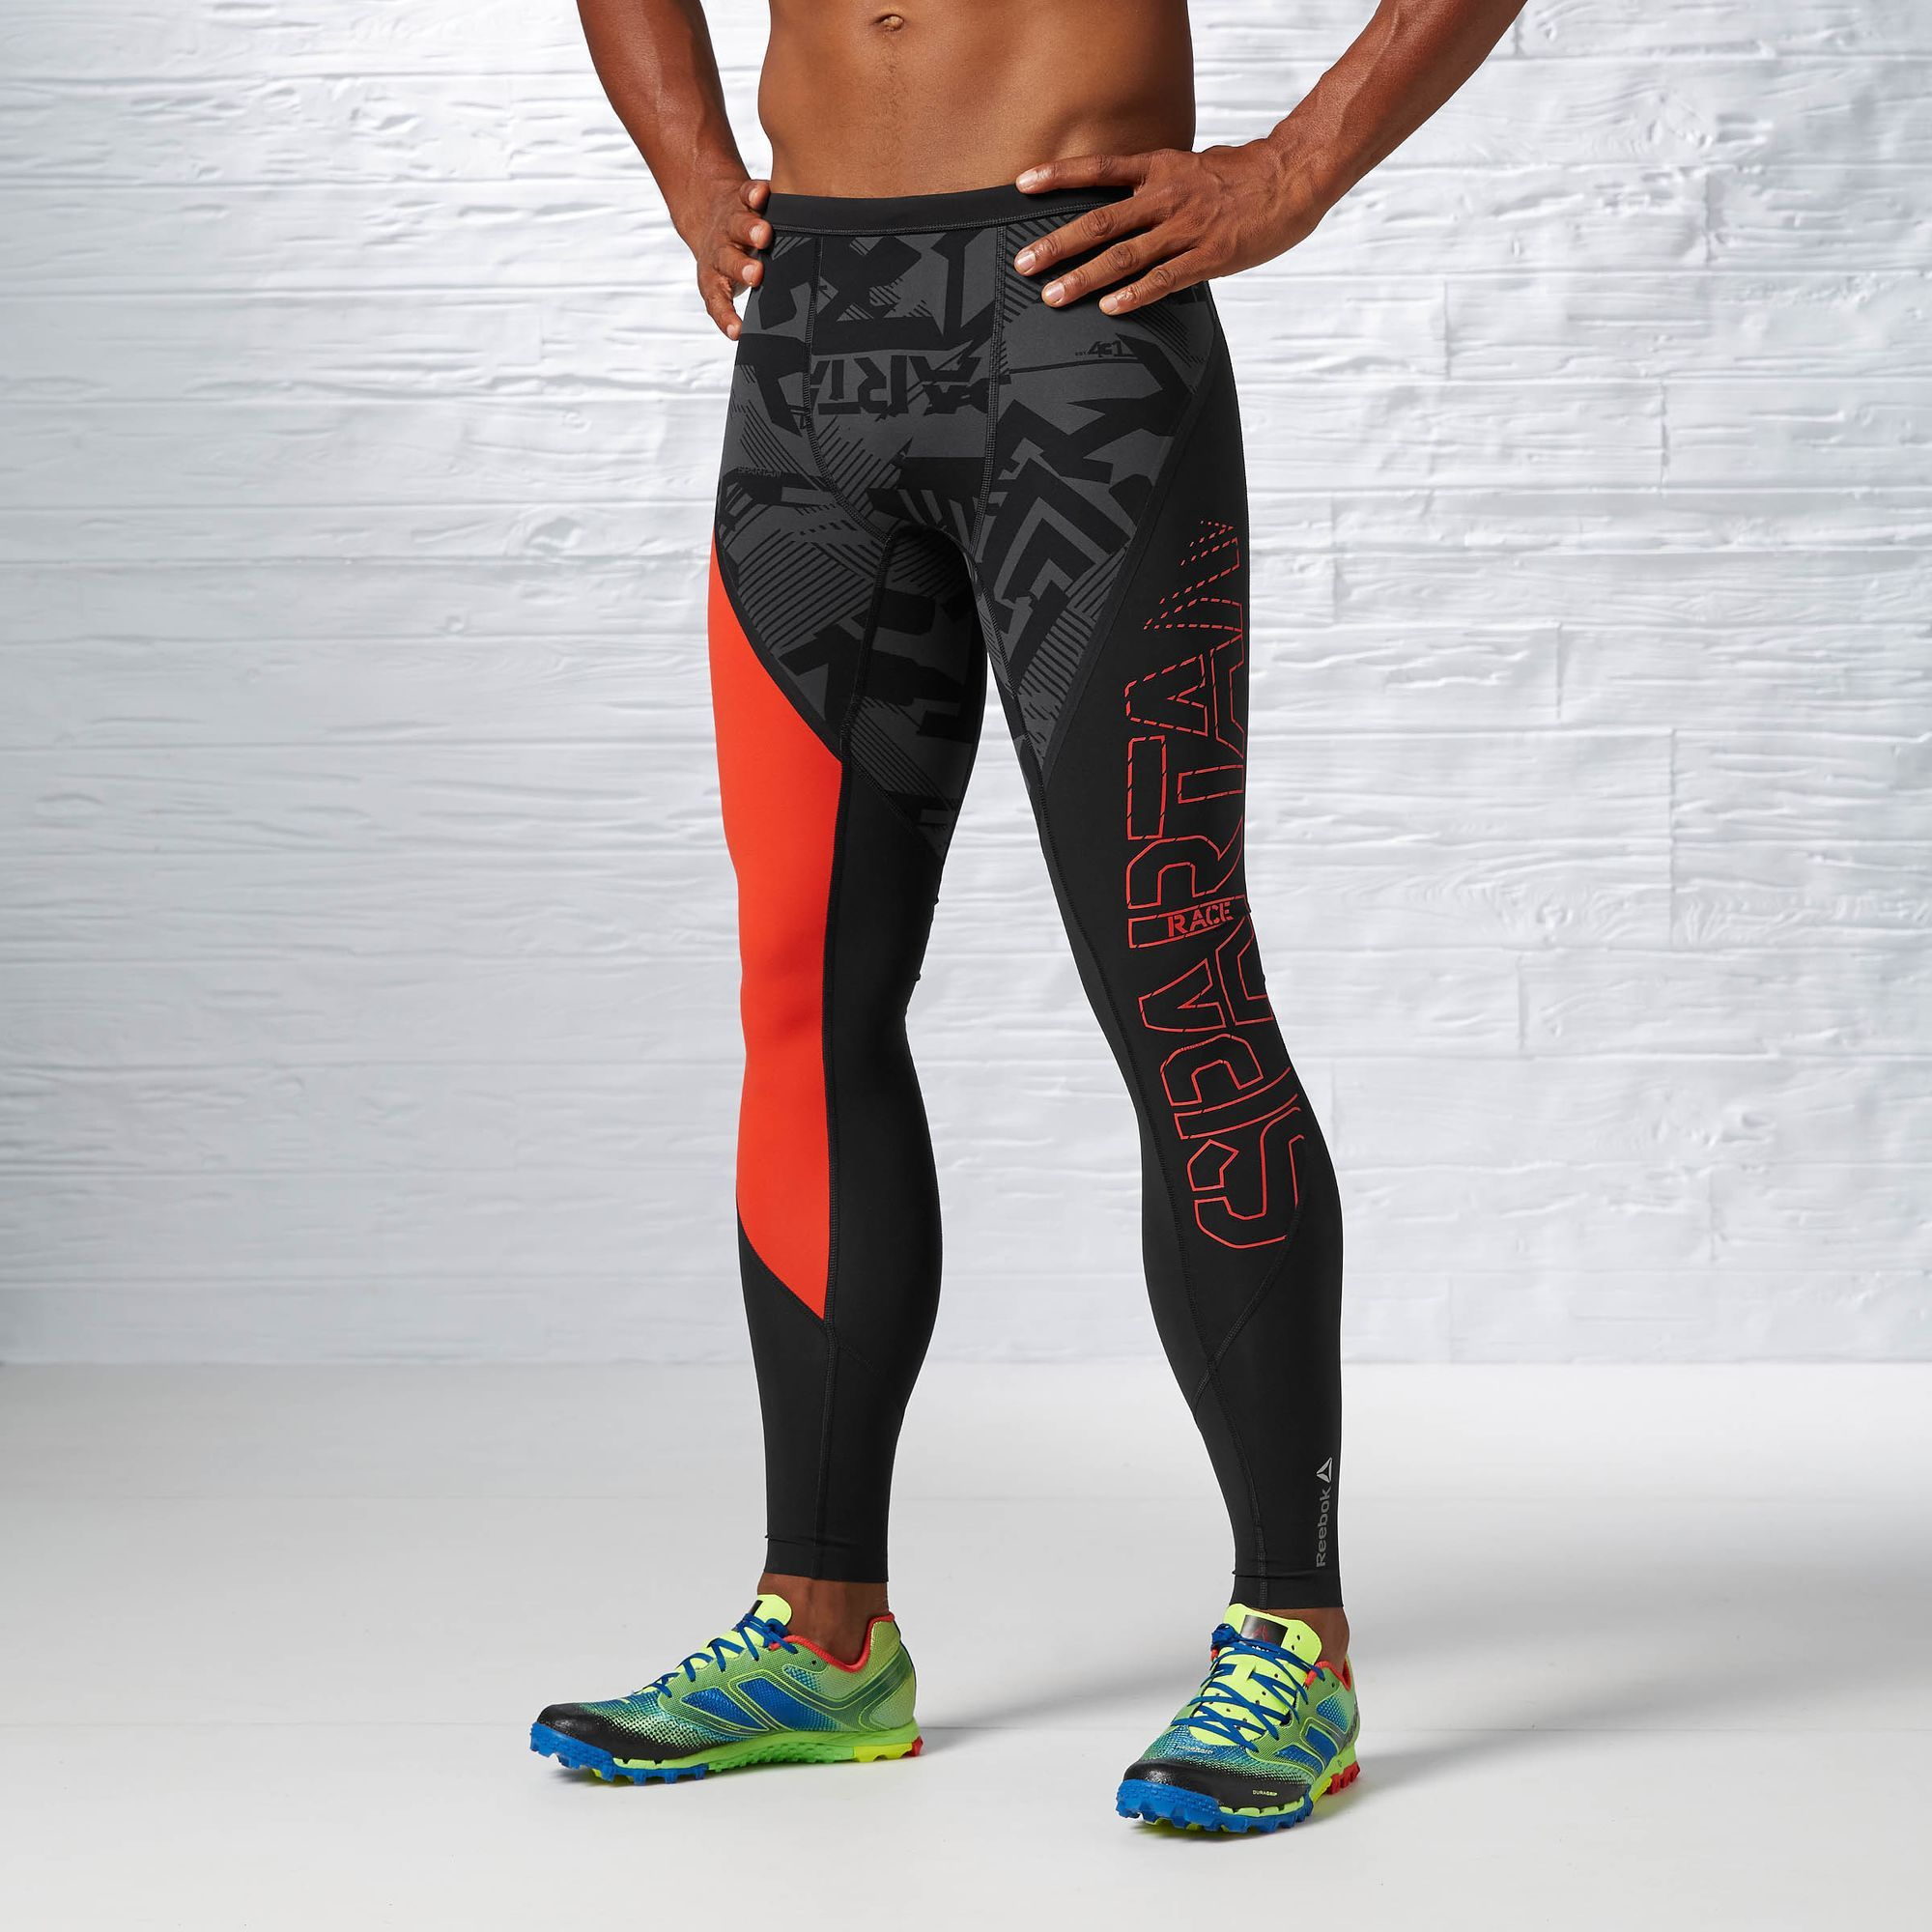 Reebok - Reebok Spartan Compression Tight Deporte Recreativo 5b4c869d2febc